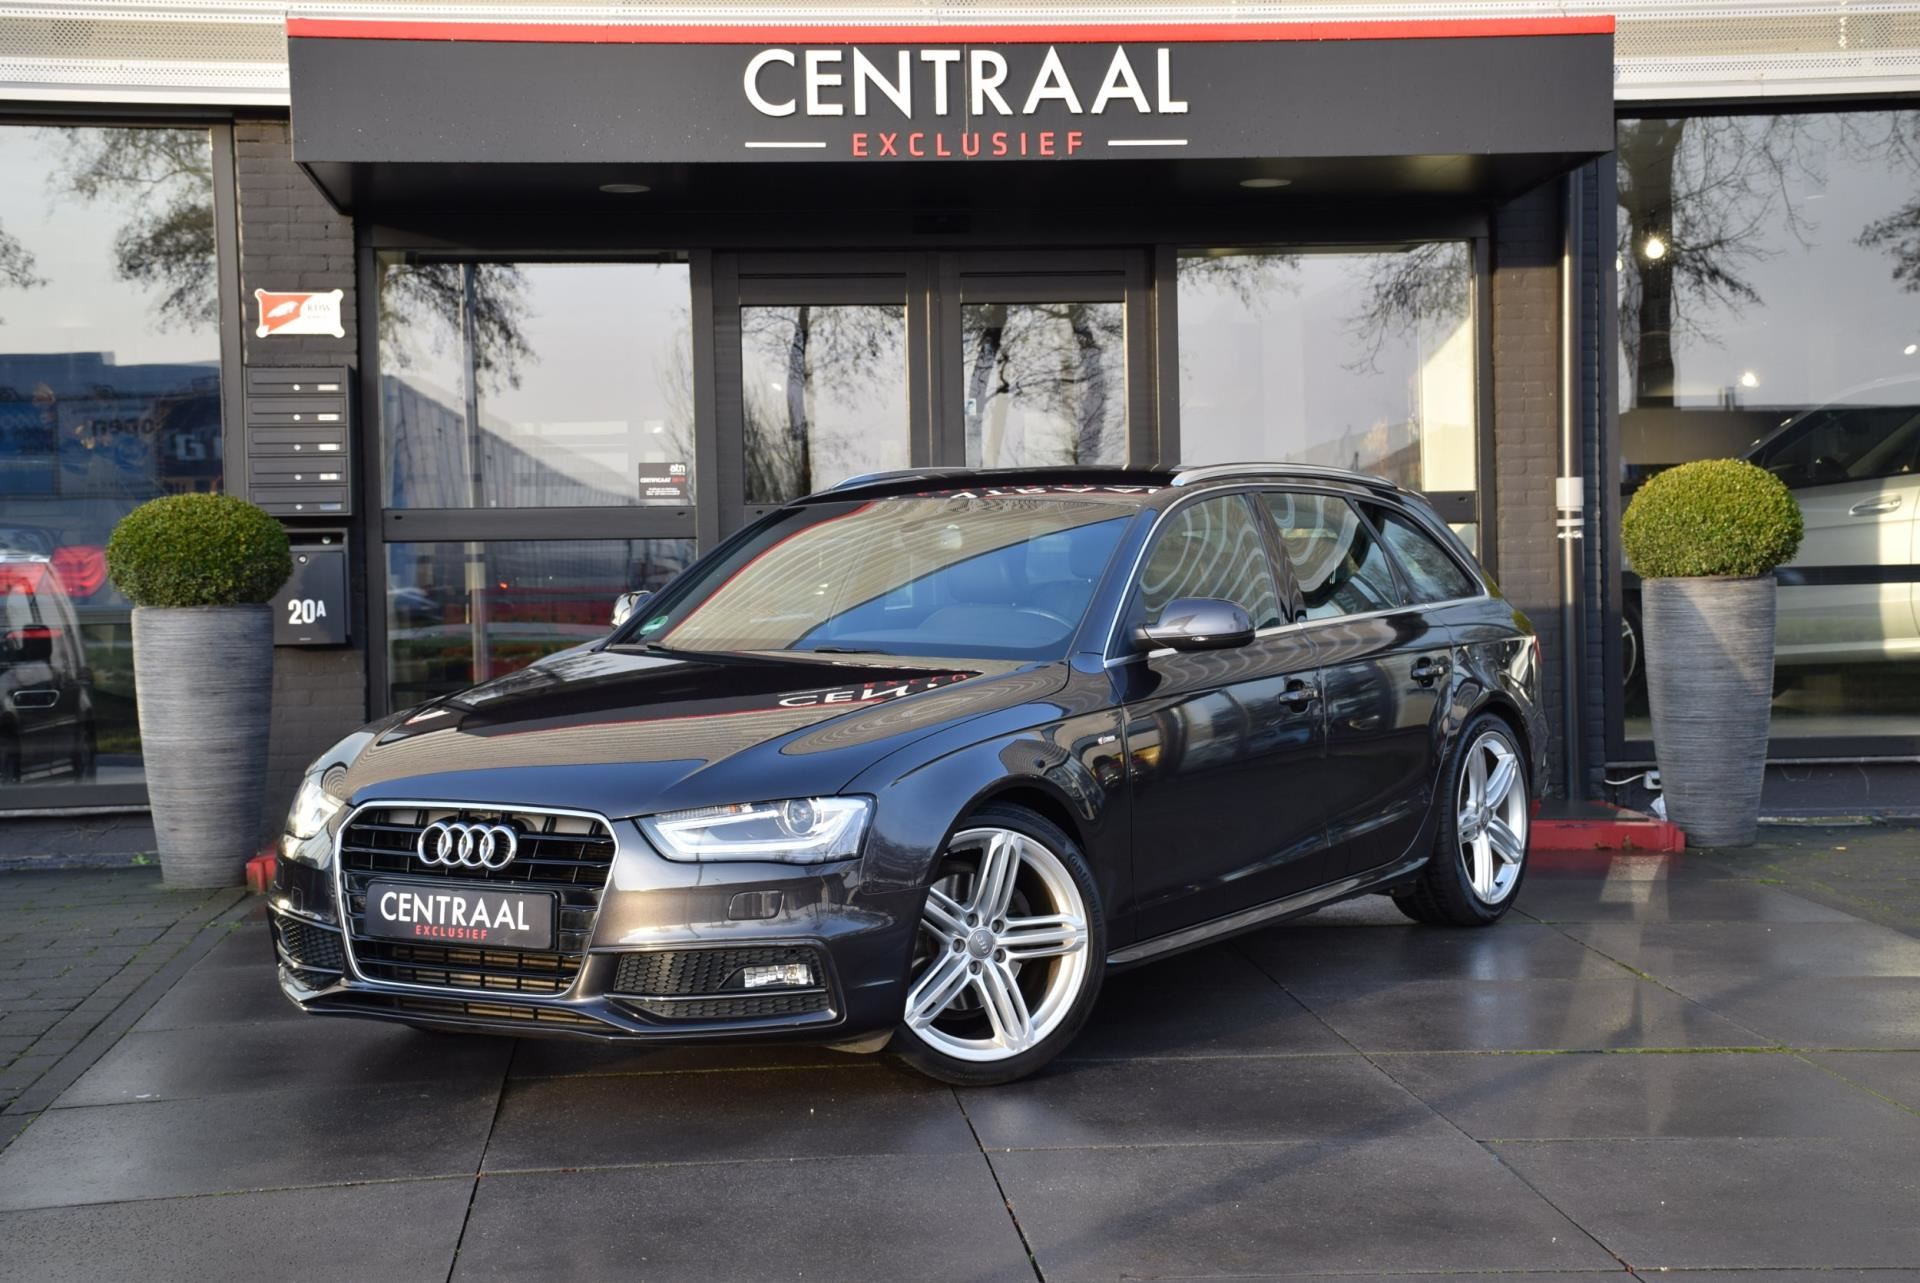 Audi A4 Avant occasion - Centraal Exclusief B.V.